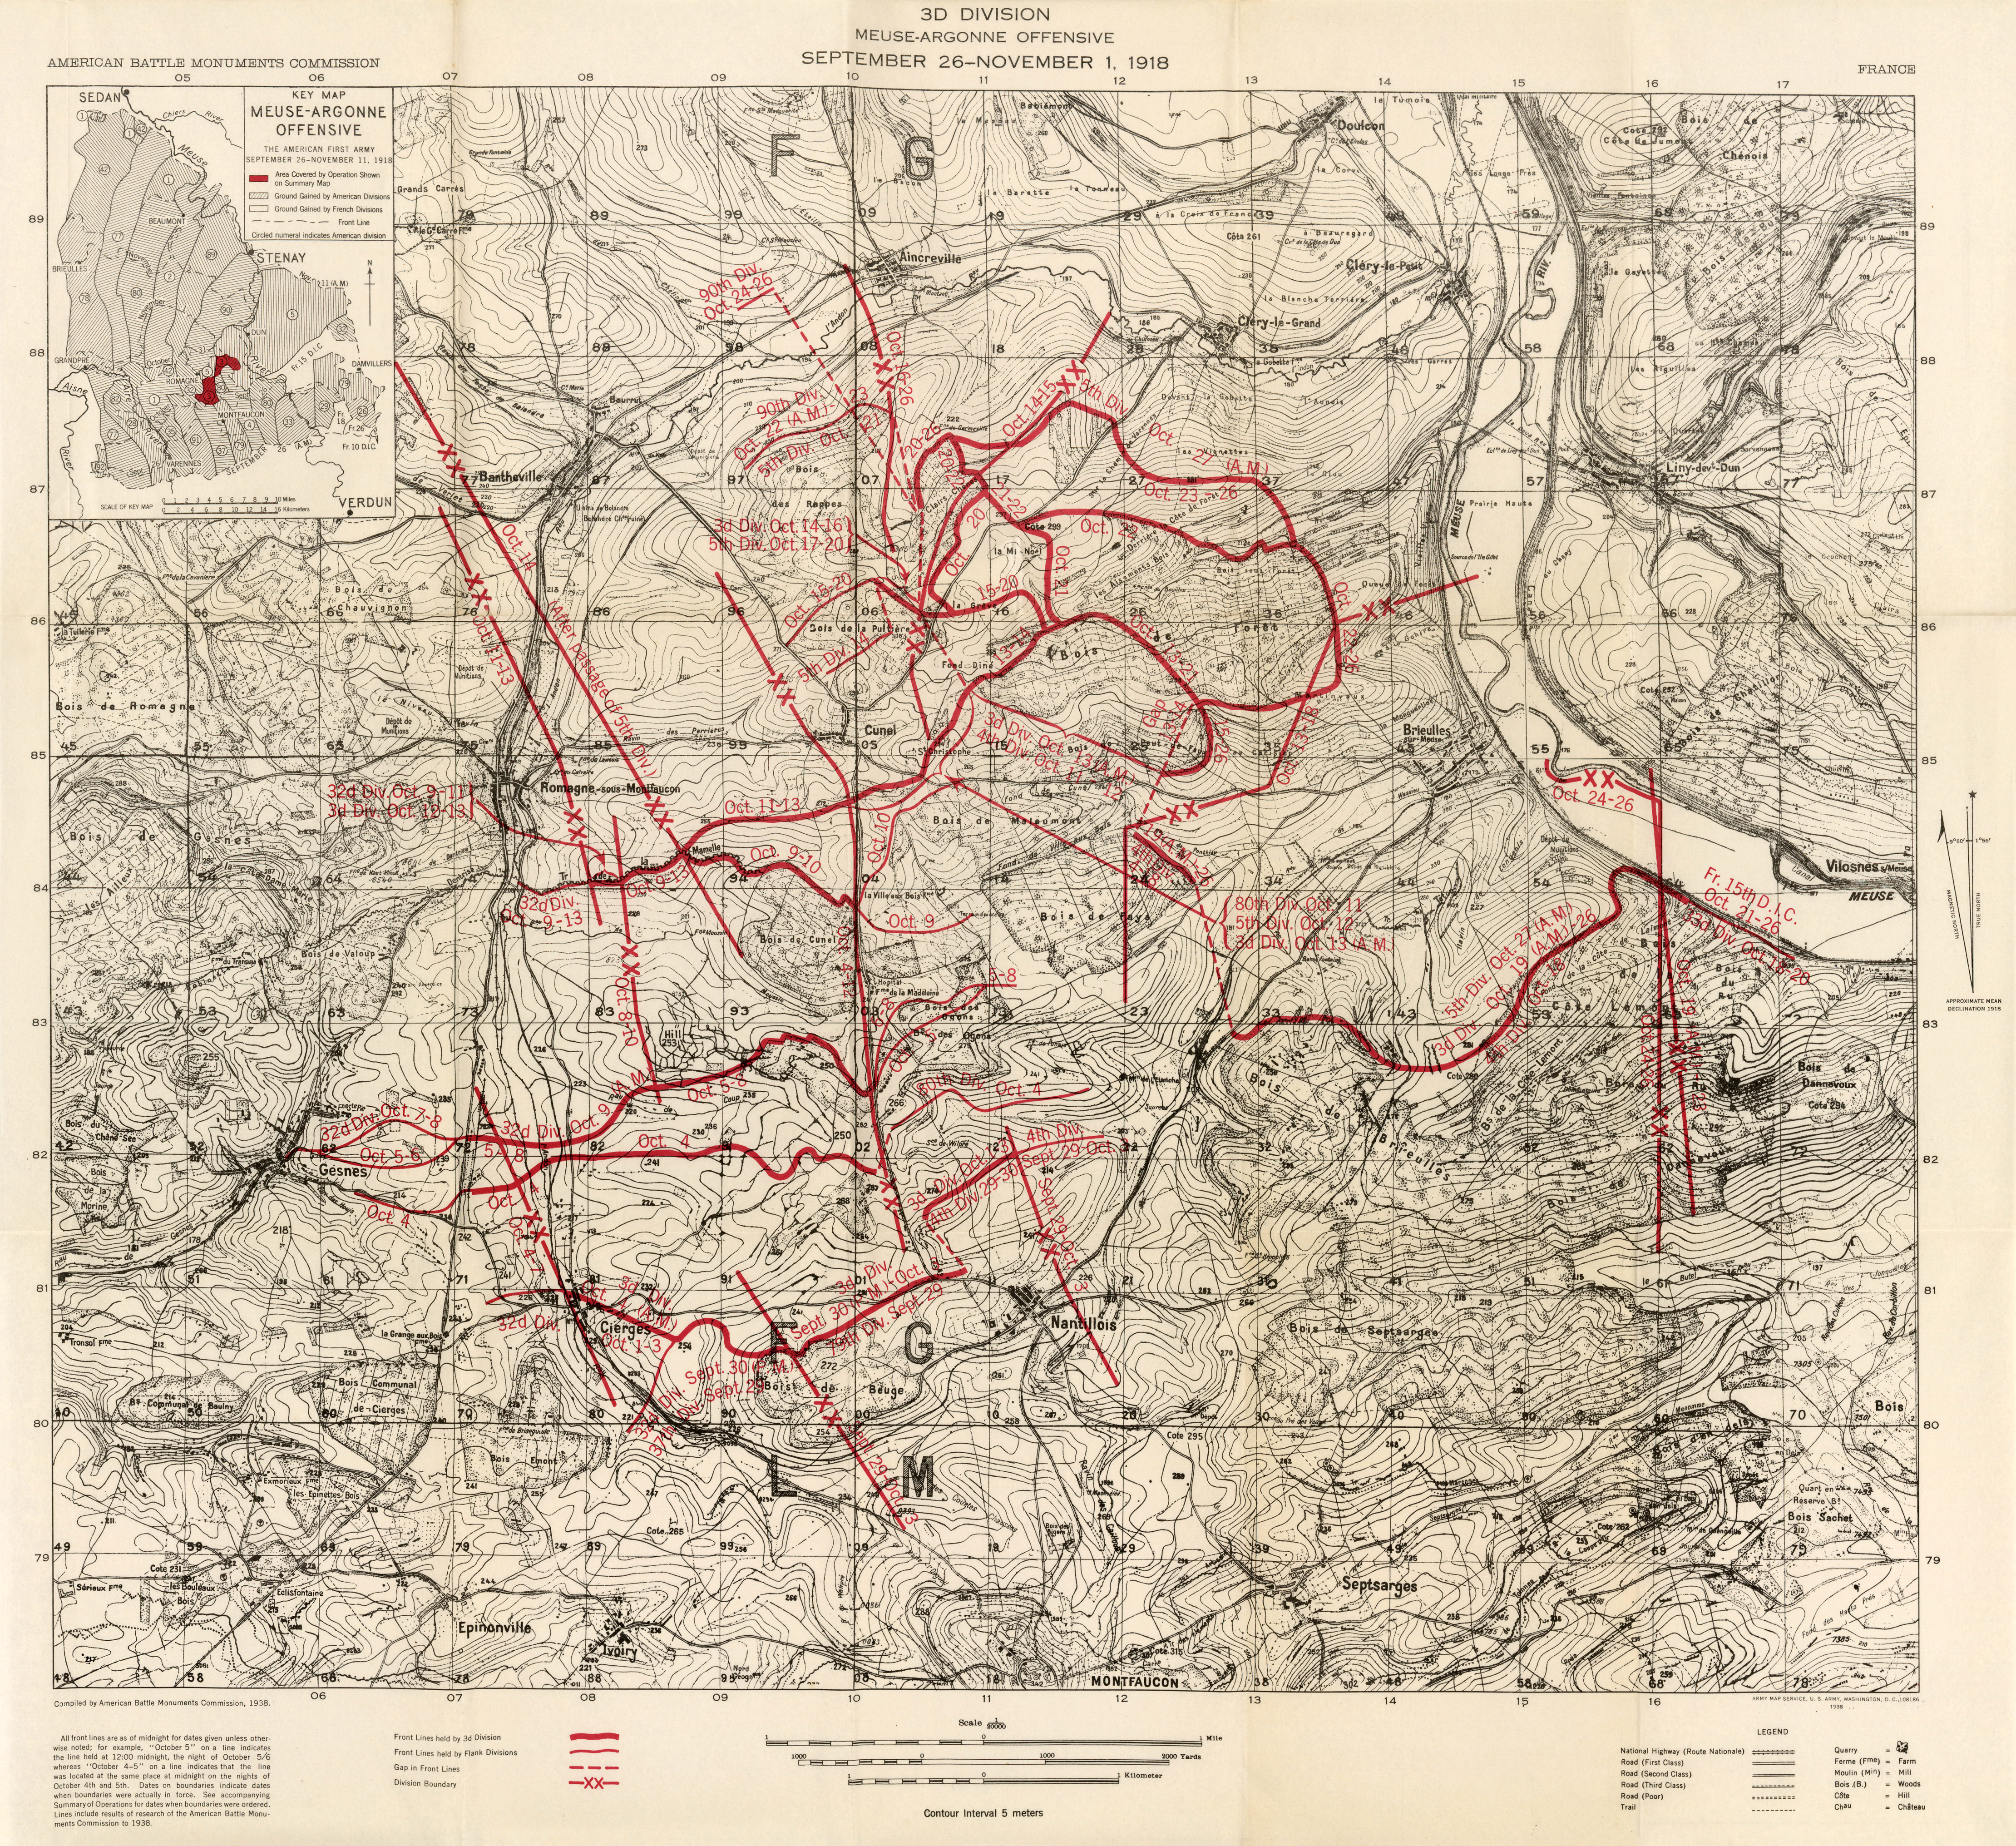 Summary of operations in the world war perry castaeda map 3rd division meuse argonne offensive september 26 november 1 gumiabroncs Image collections